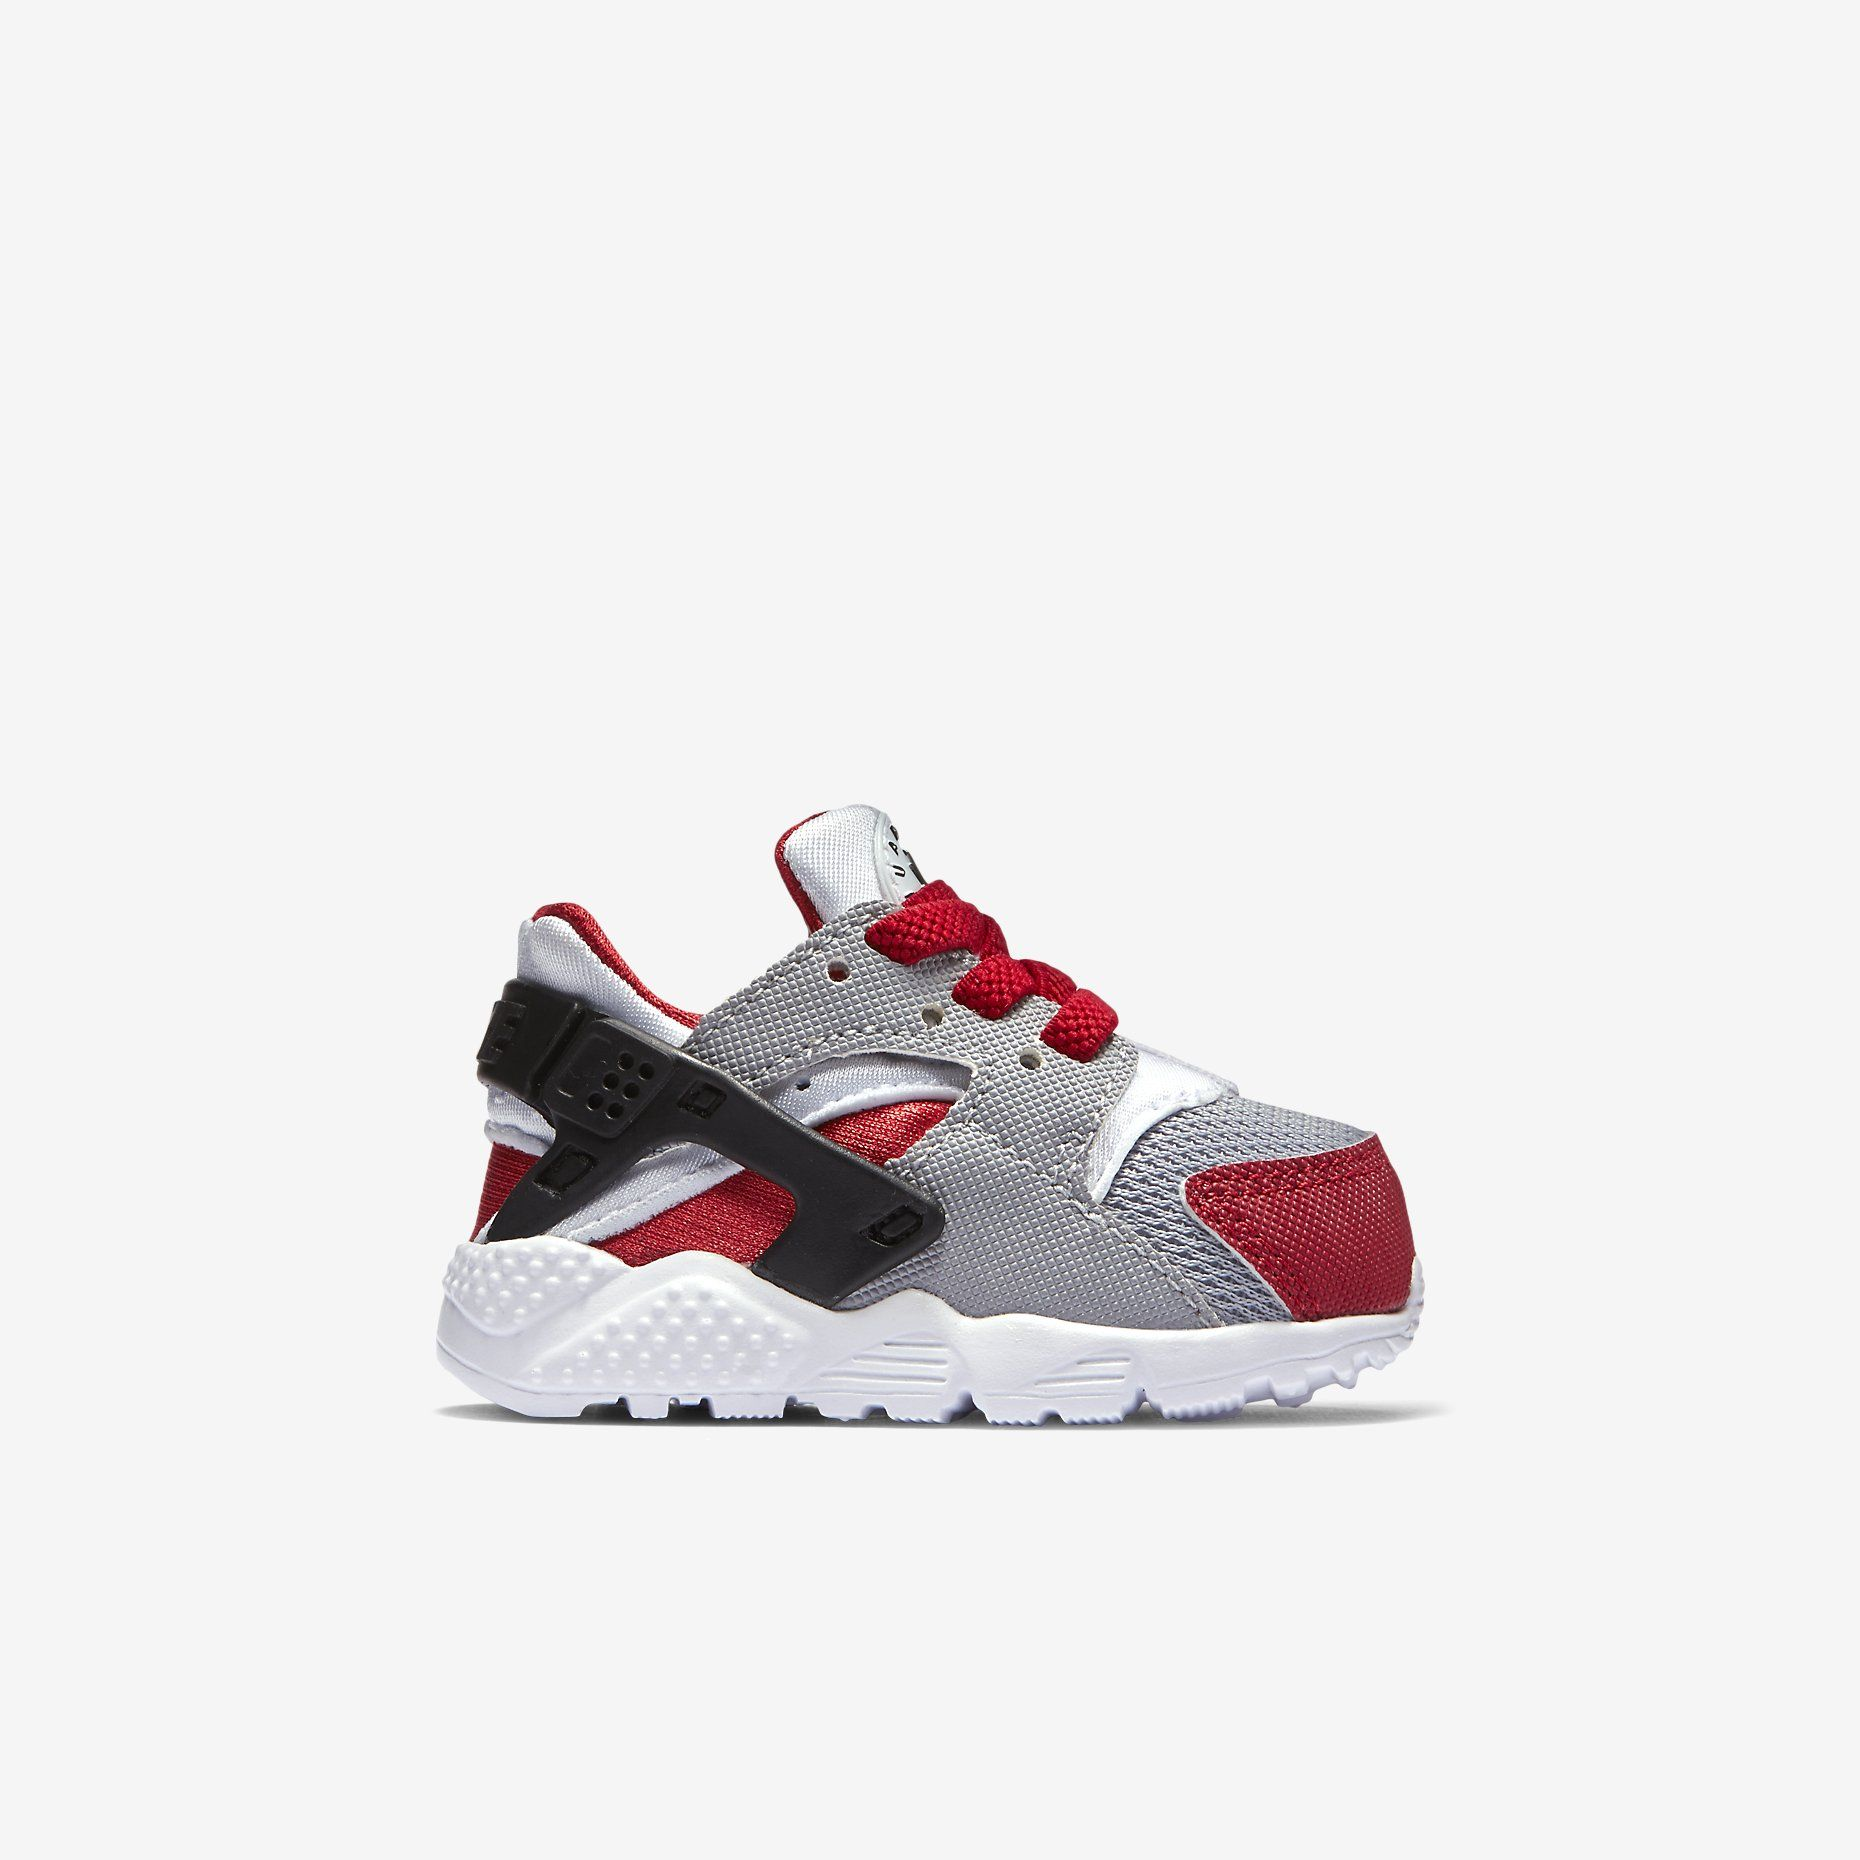 nike huarache run chaussure pour b b et tr s petit enfant nike store fr baby shoes. Black Bedroom Furniture Sets. Home Design Ideas